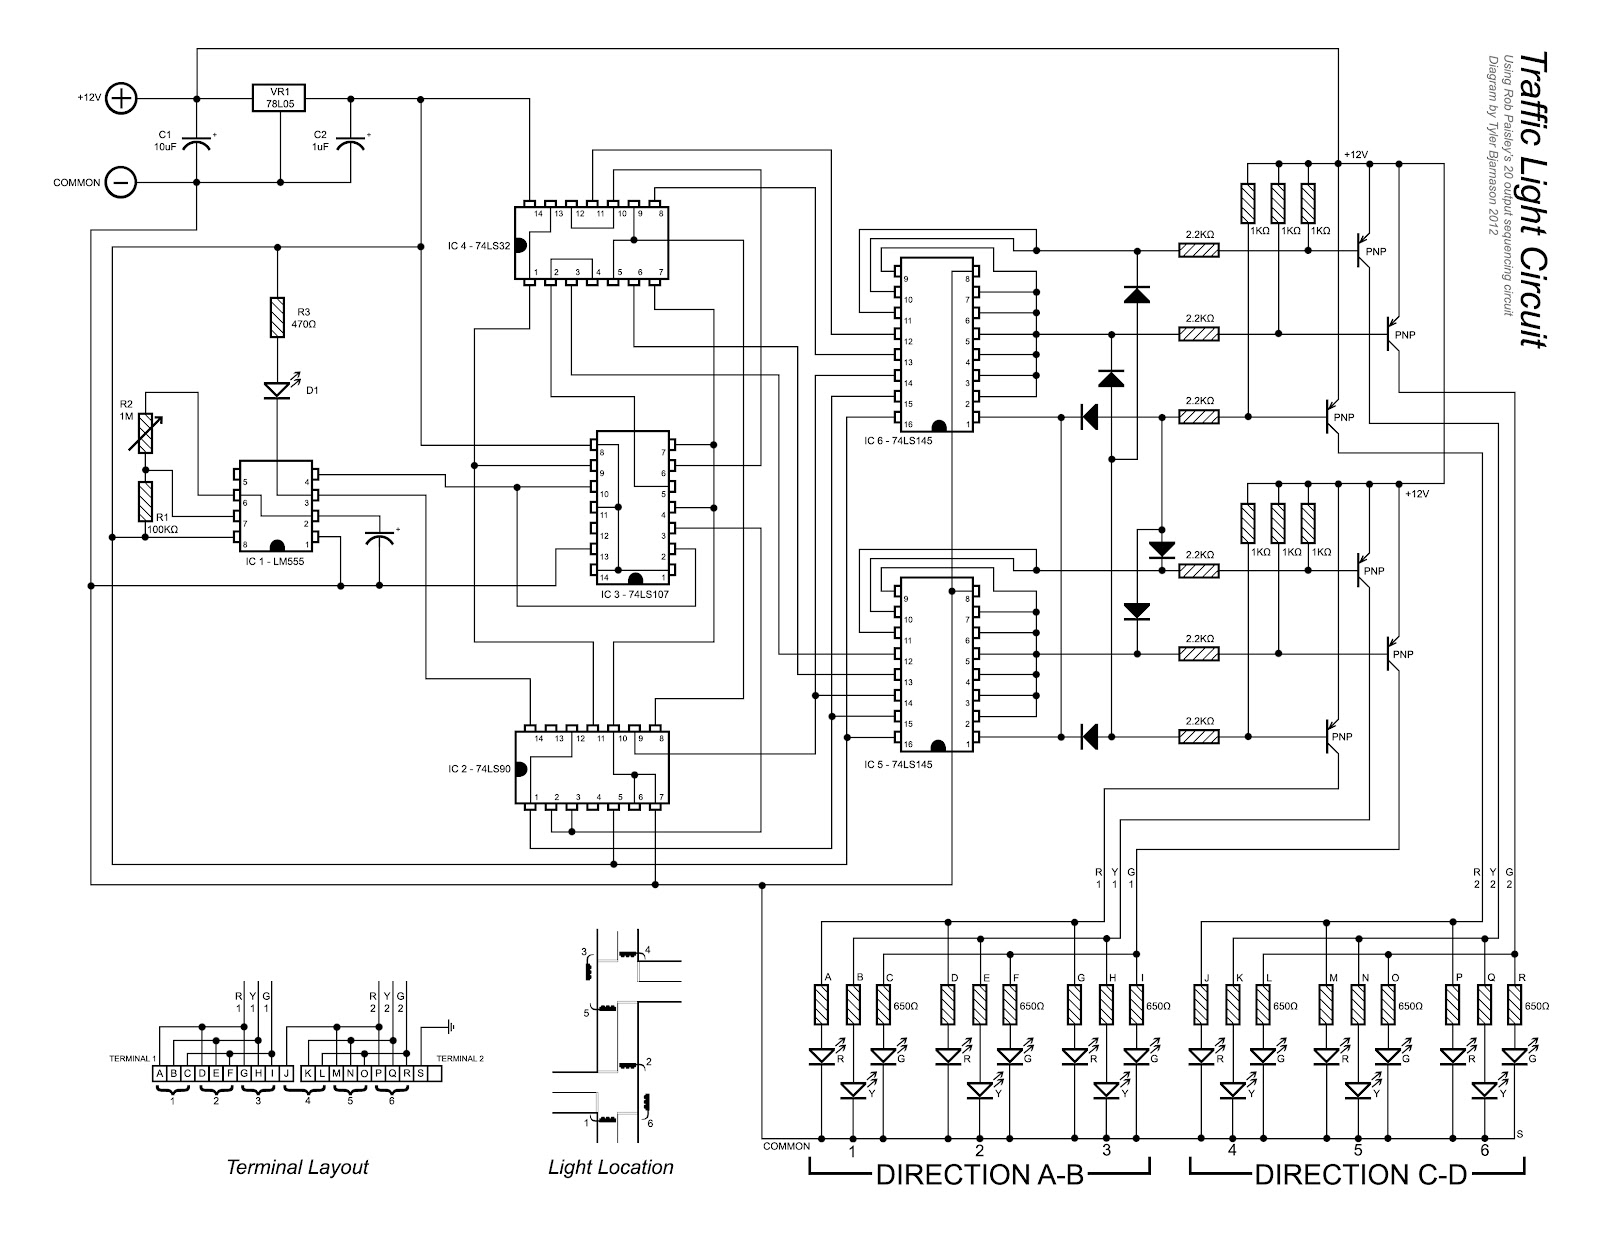 small resolution of wiring diagram for traffic light controller circuit